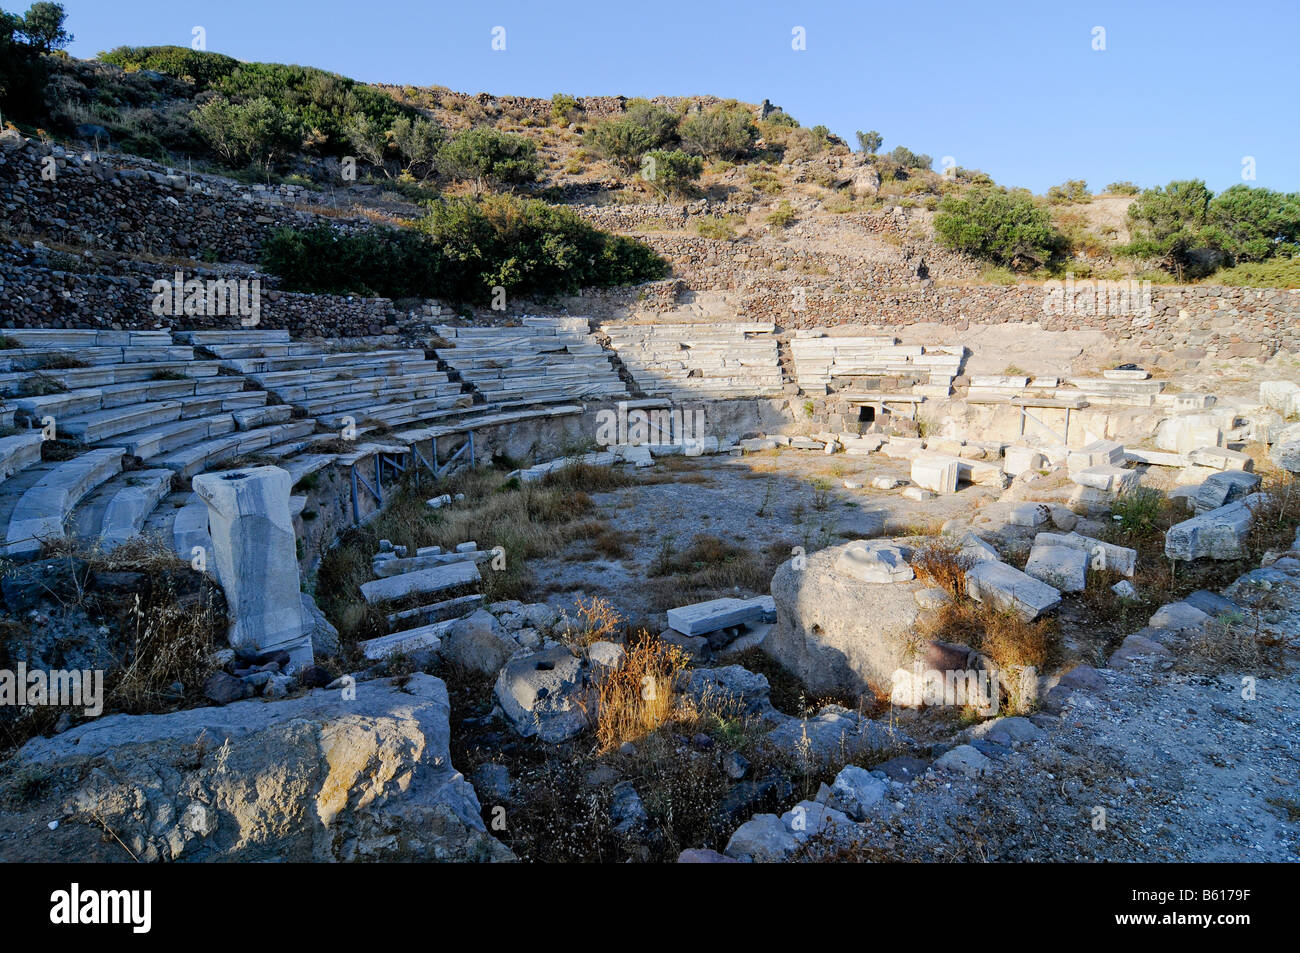 Antique stone amphitheatre of Melos on the Island of Milos, Cyclades Island Group, Greece, Europe - Stock Image